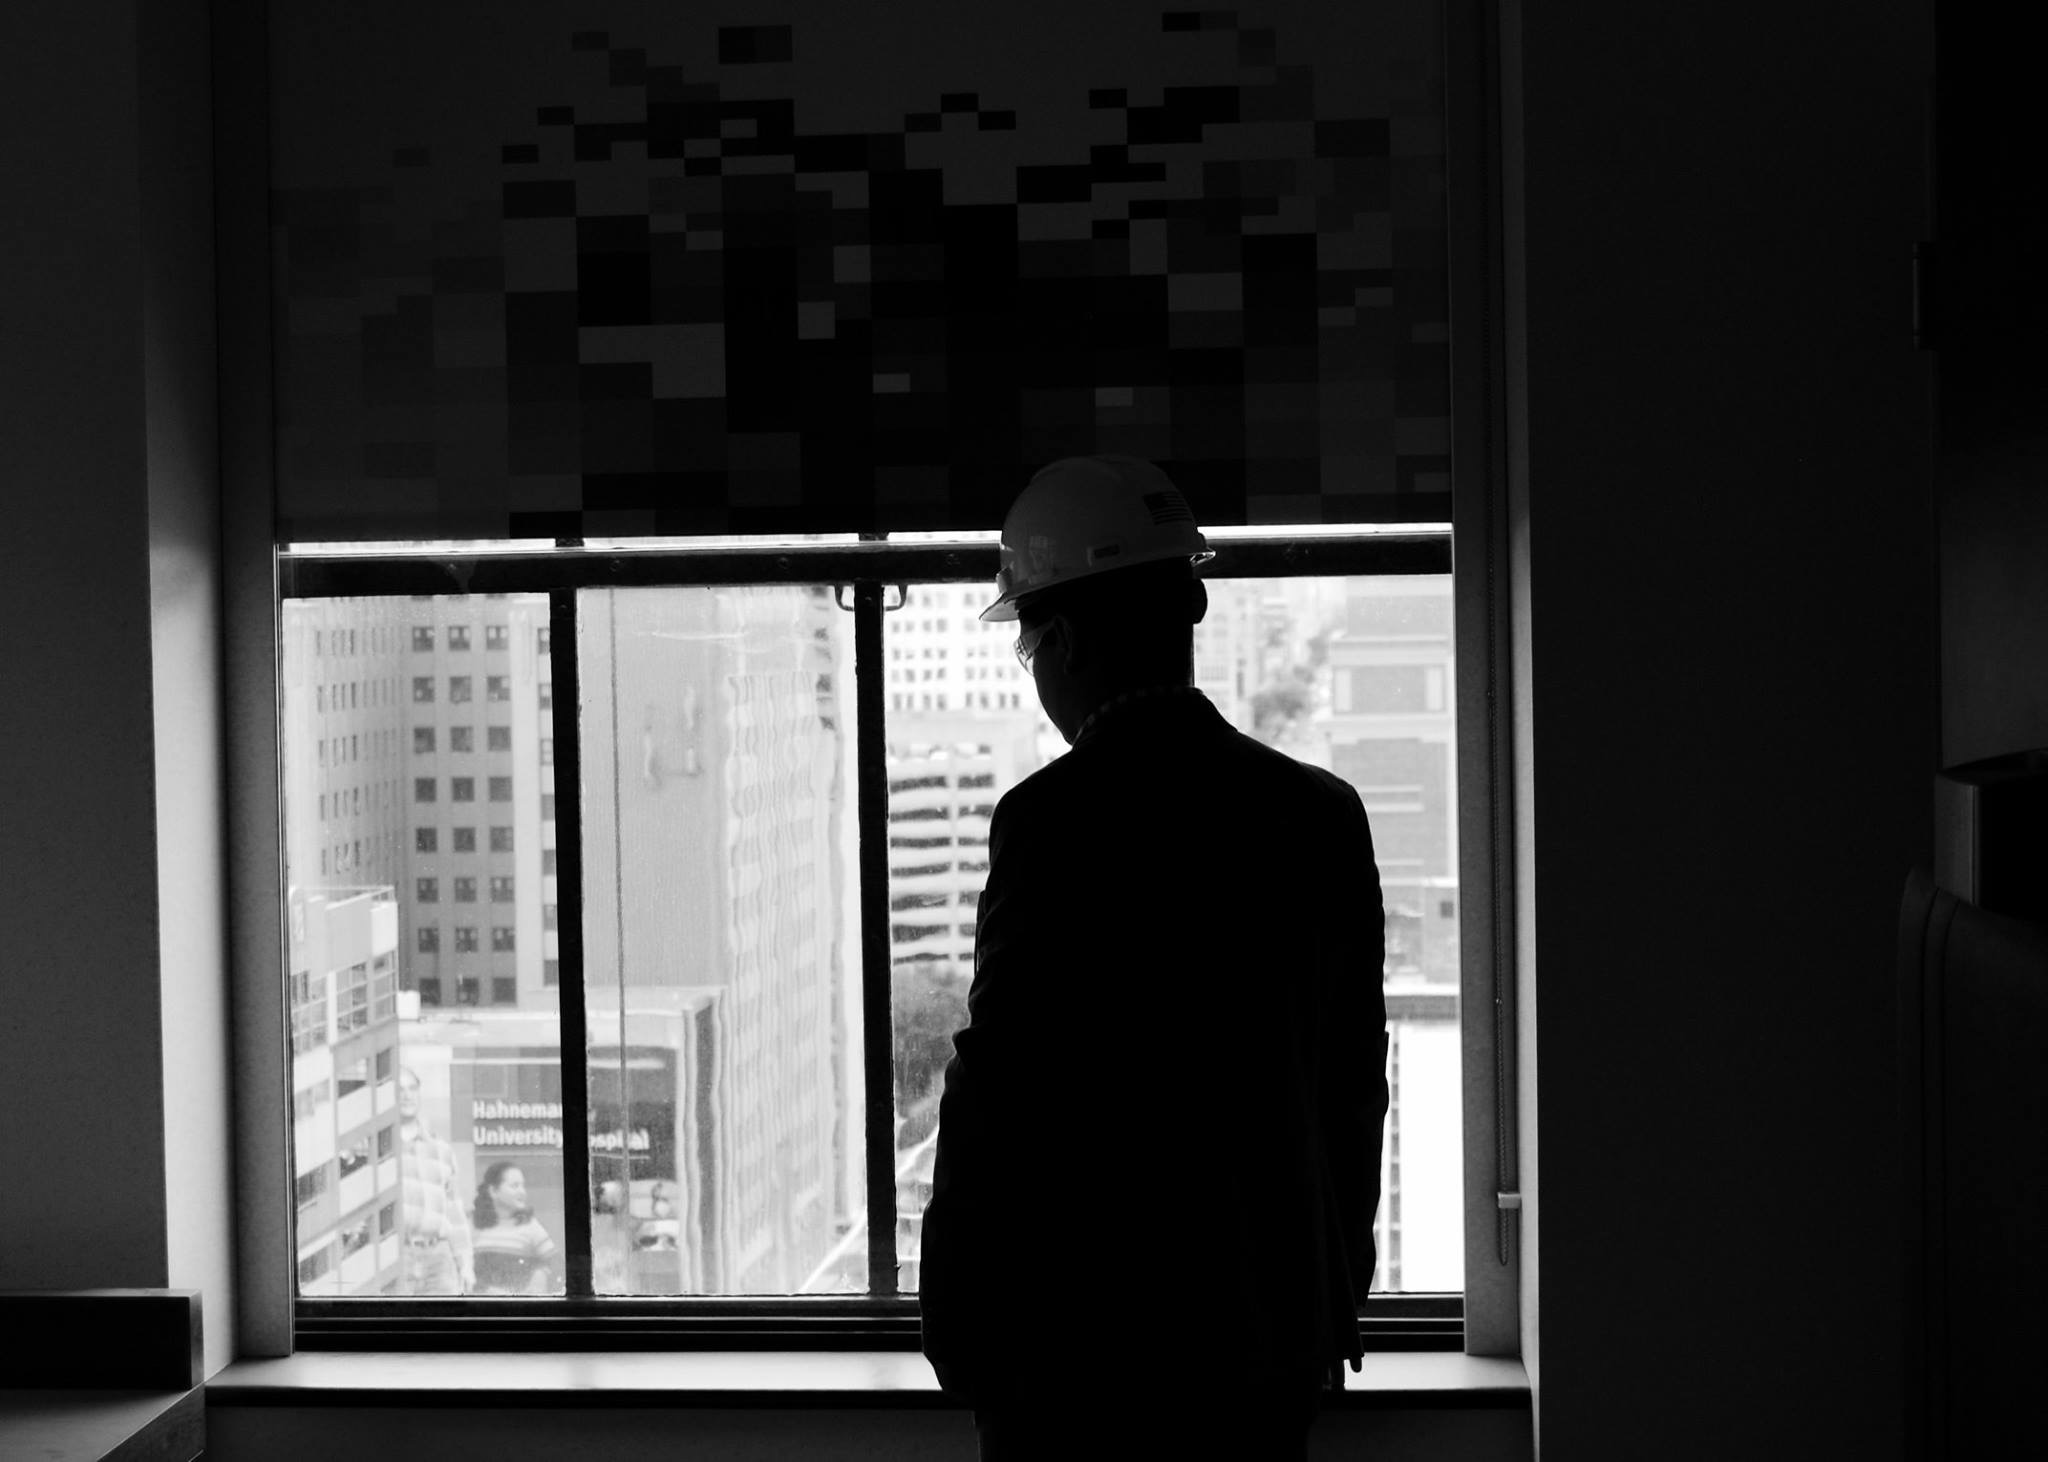 person in hard hat and suit looking out a window at skyscrapers